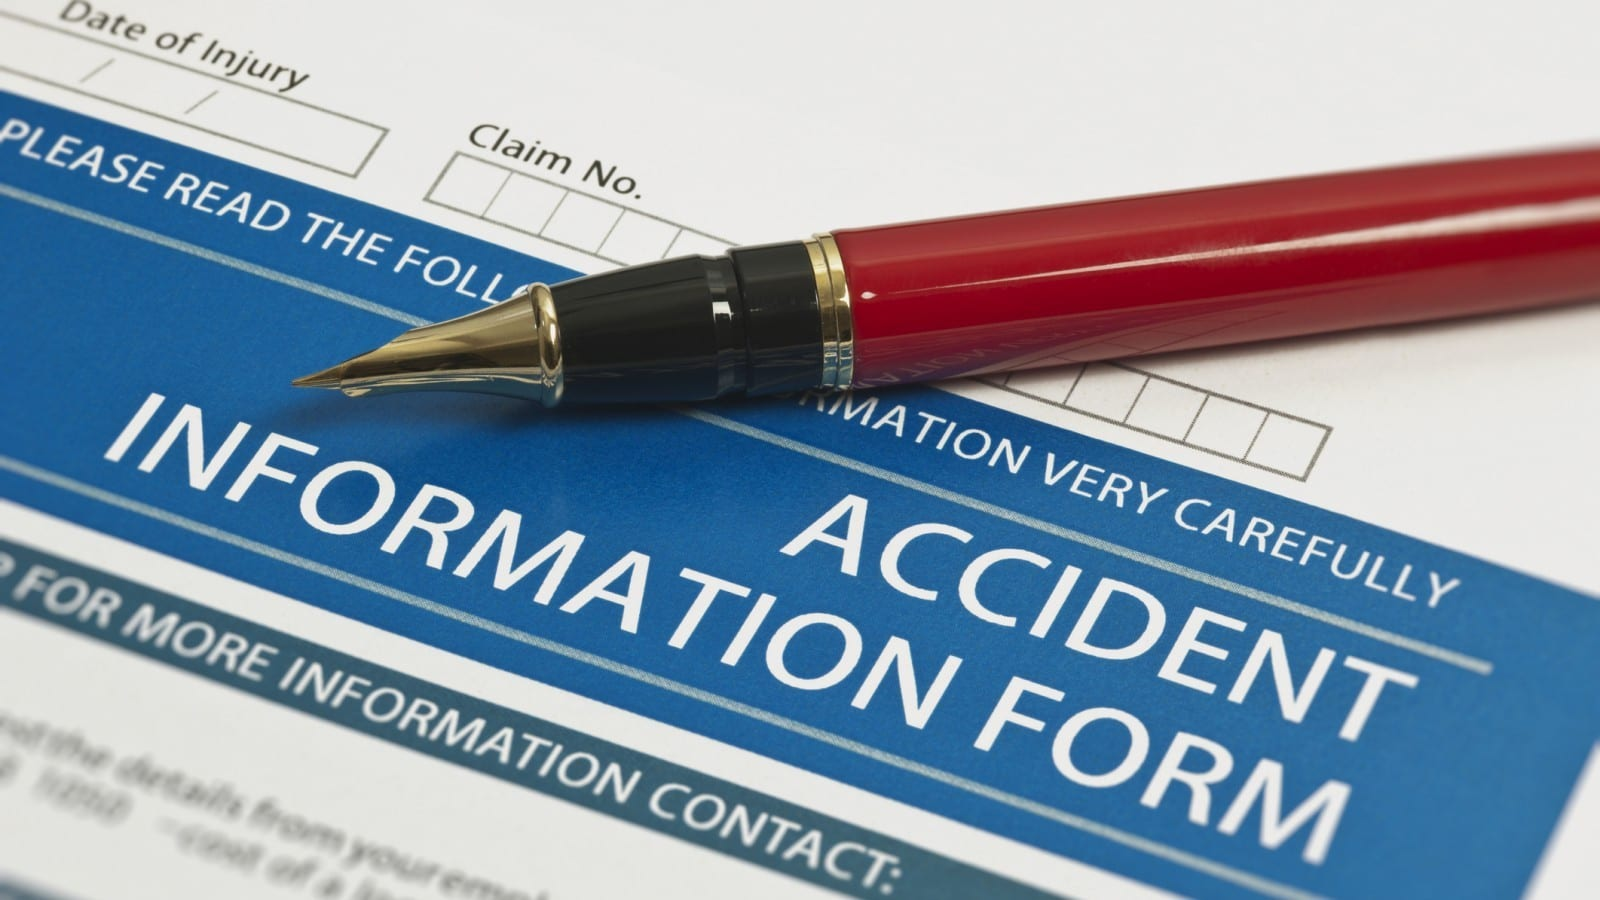 Accident Information Form Stock Photo